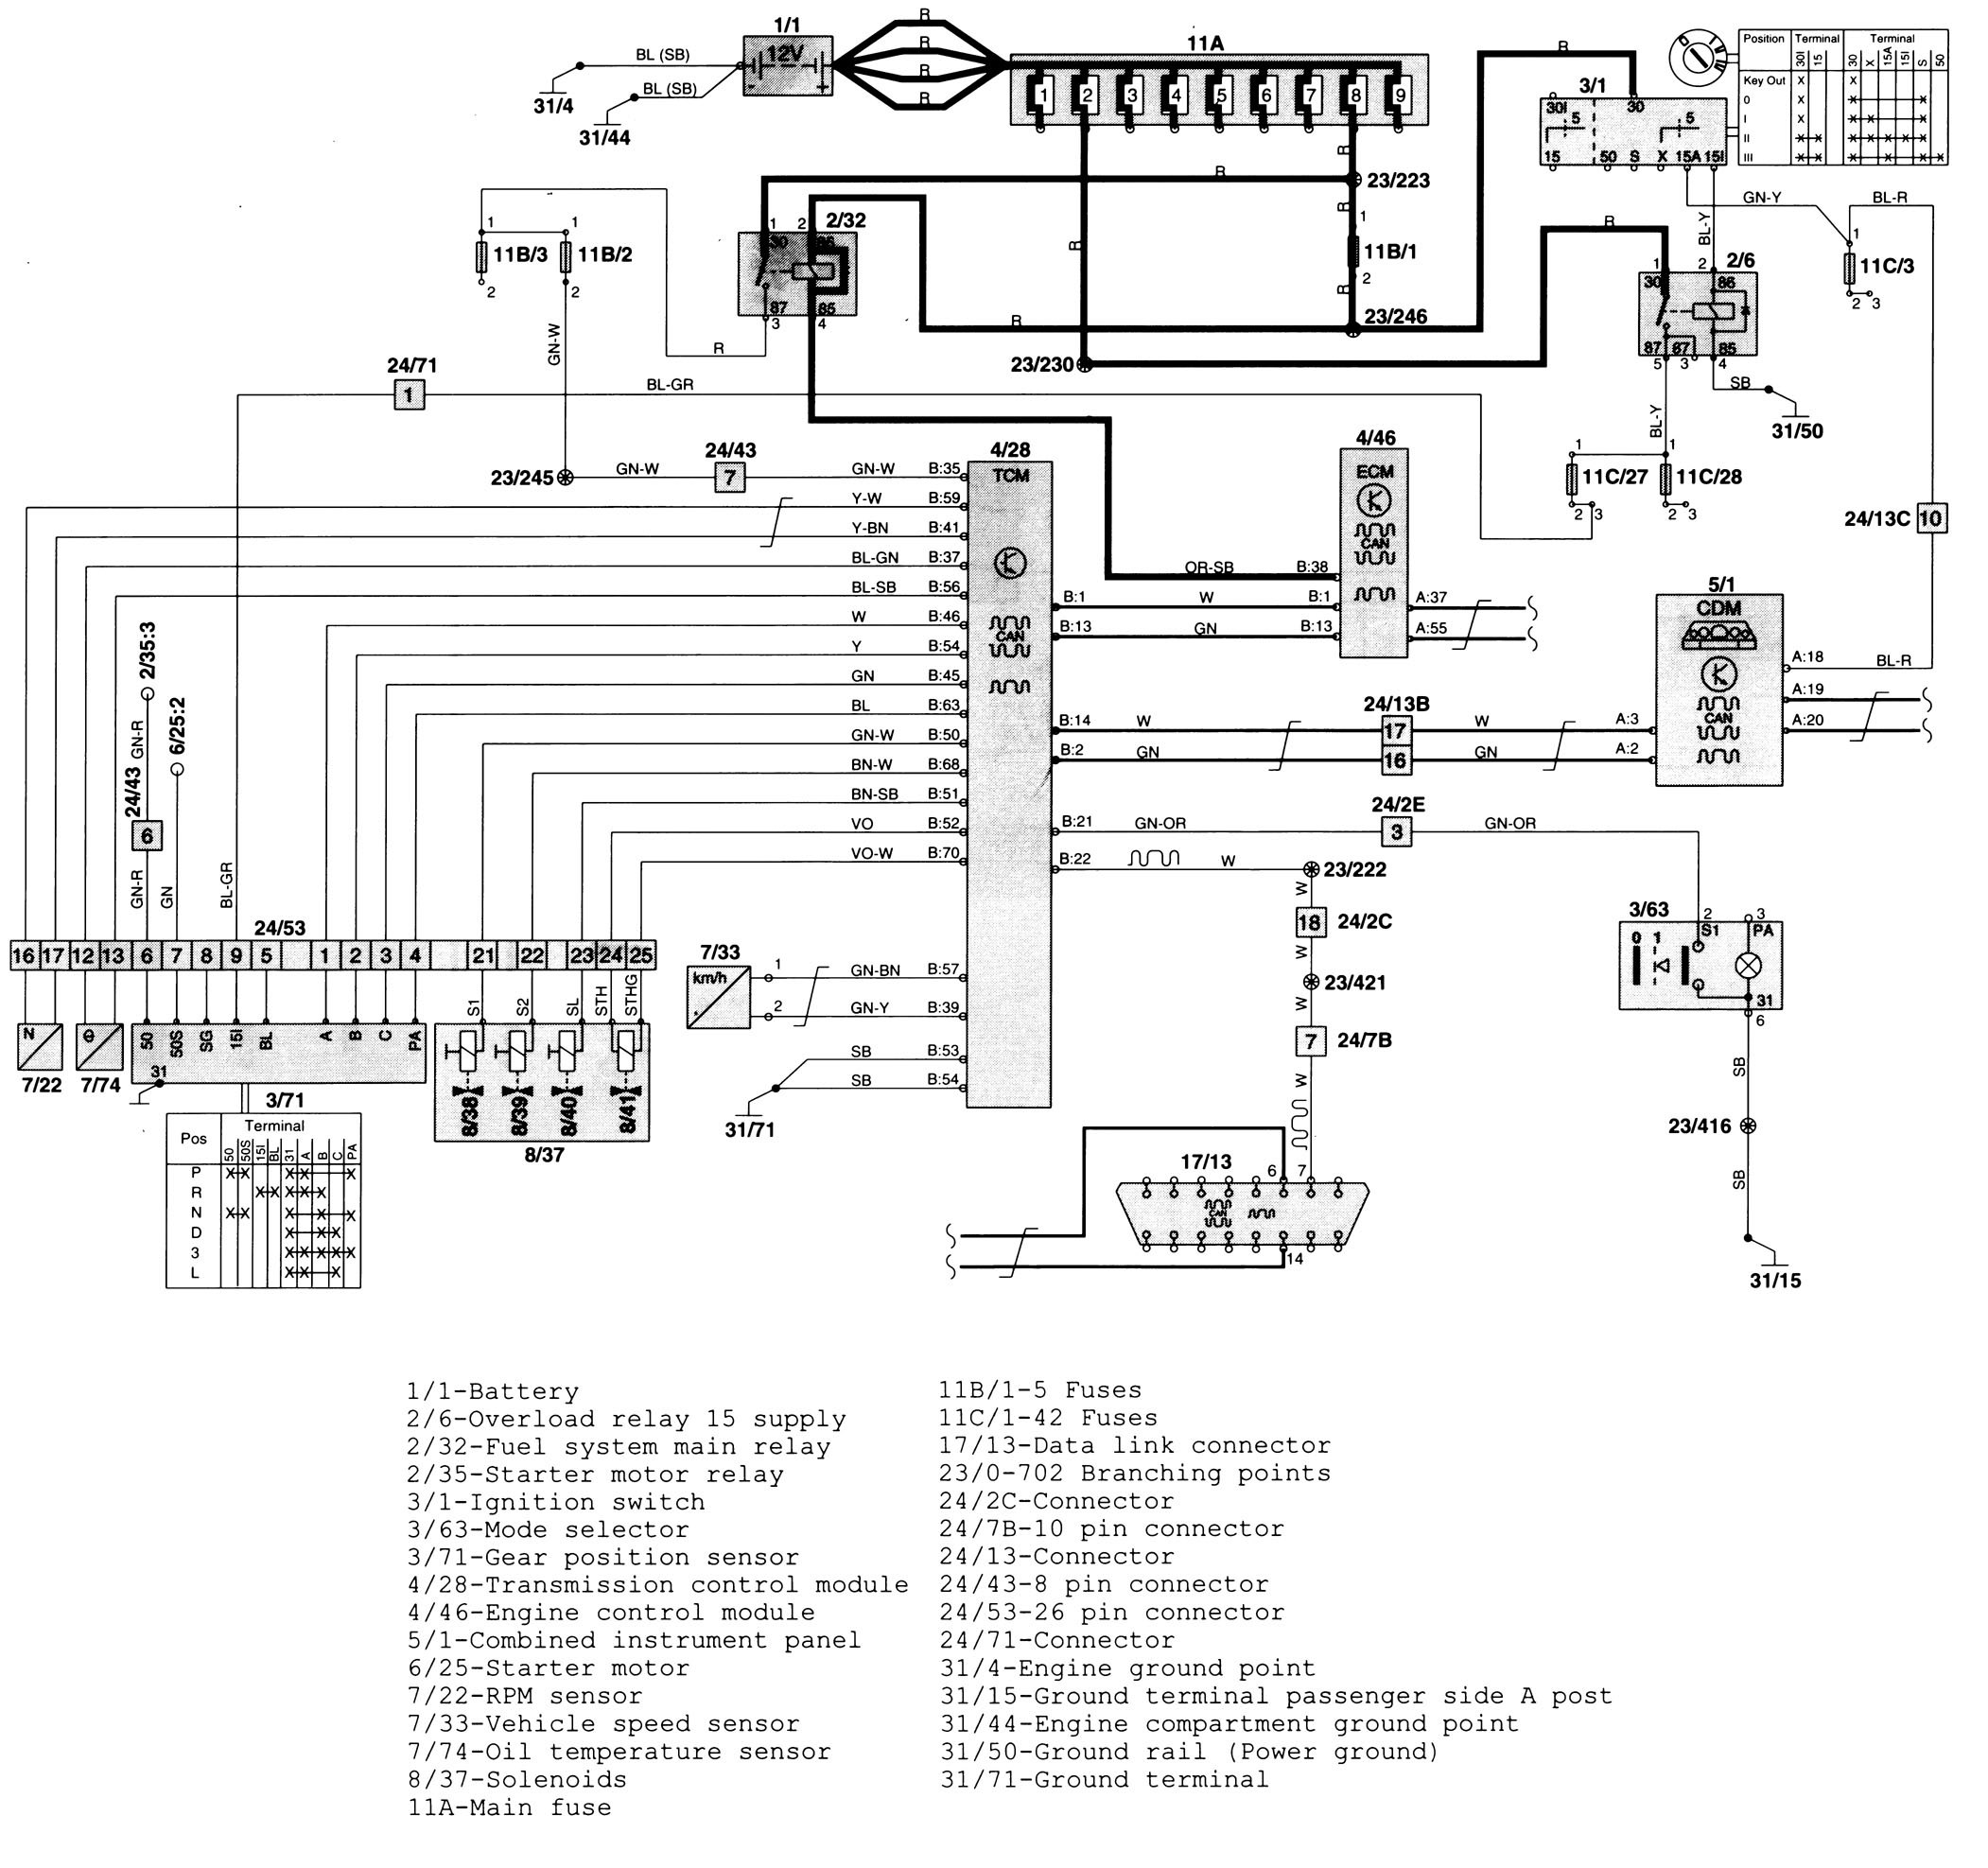 volvo c70 wiring diagram transmission controls 1999 volvo c70 (1999) wiring diagrams transmission controls transmission wiring diagrams at fashall.co